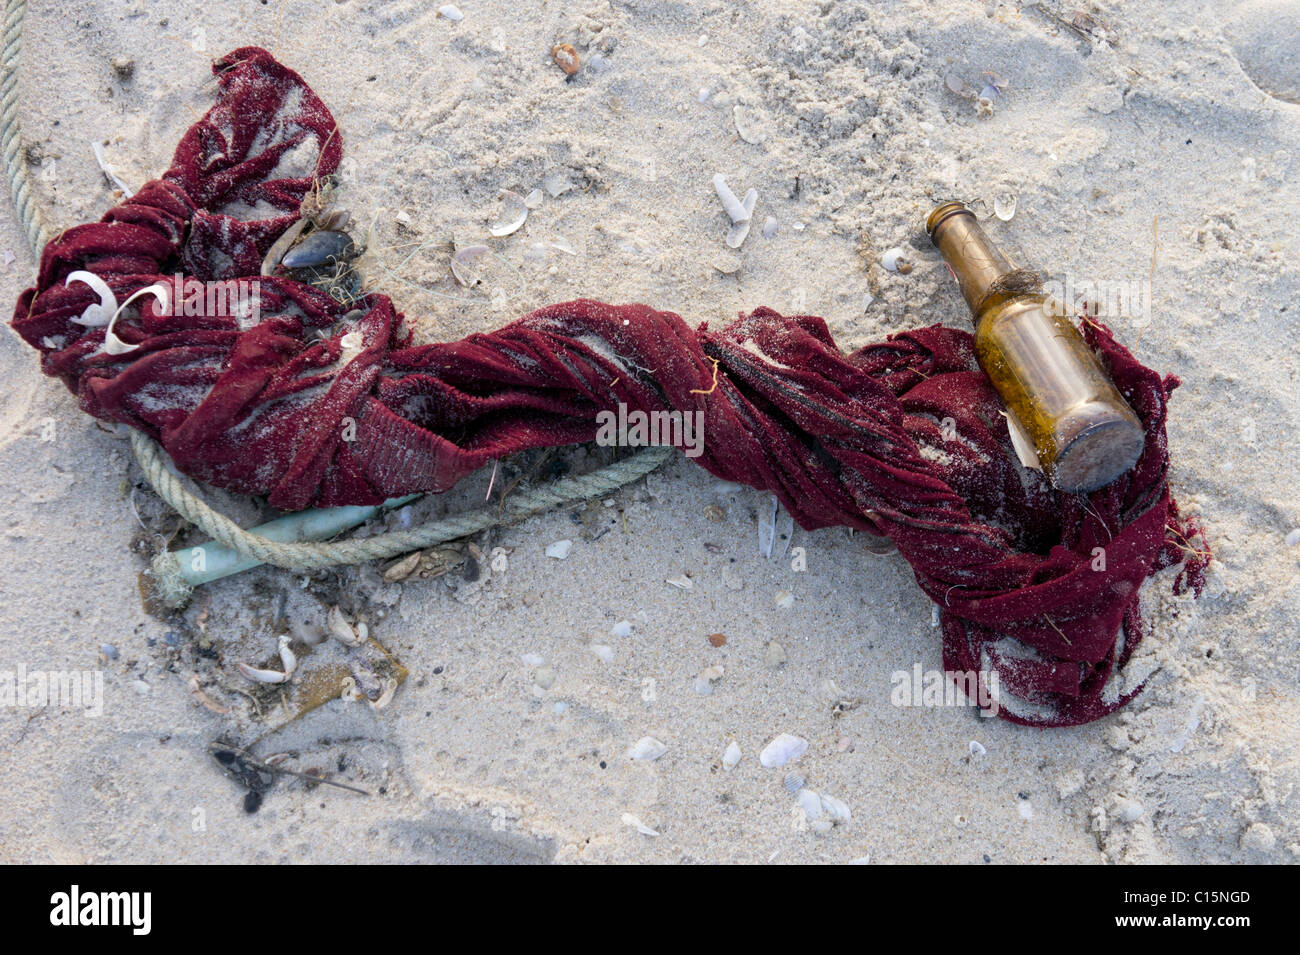 Polluted beach - Stock Image